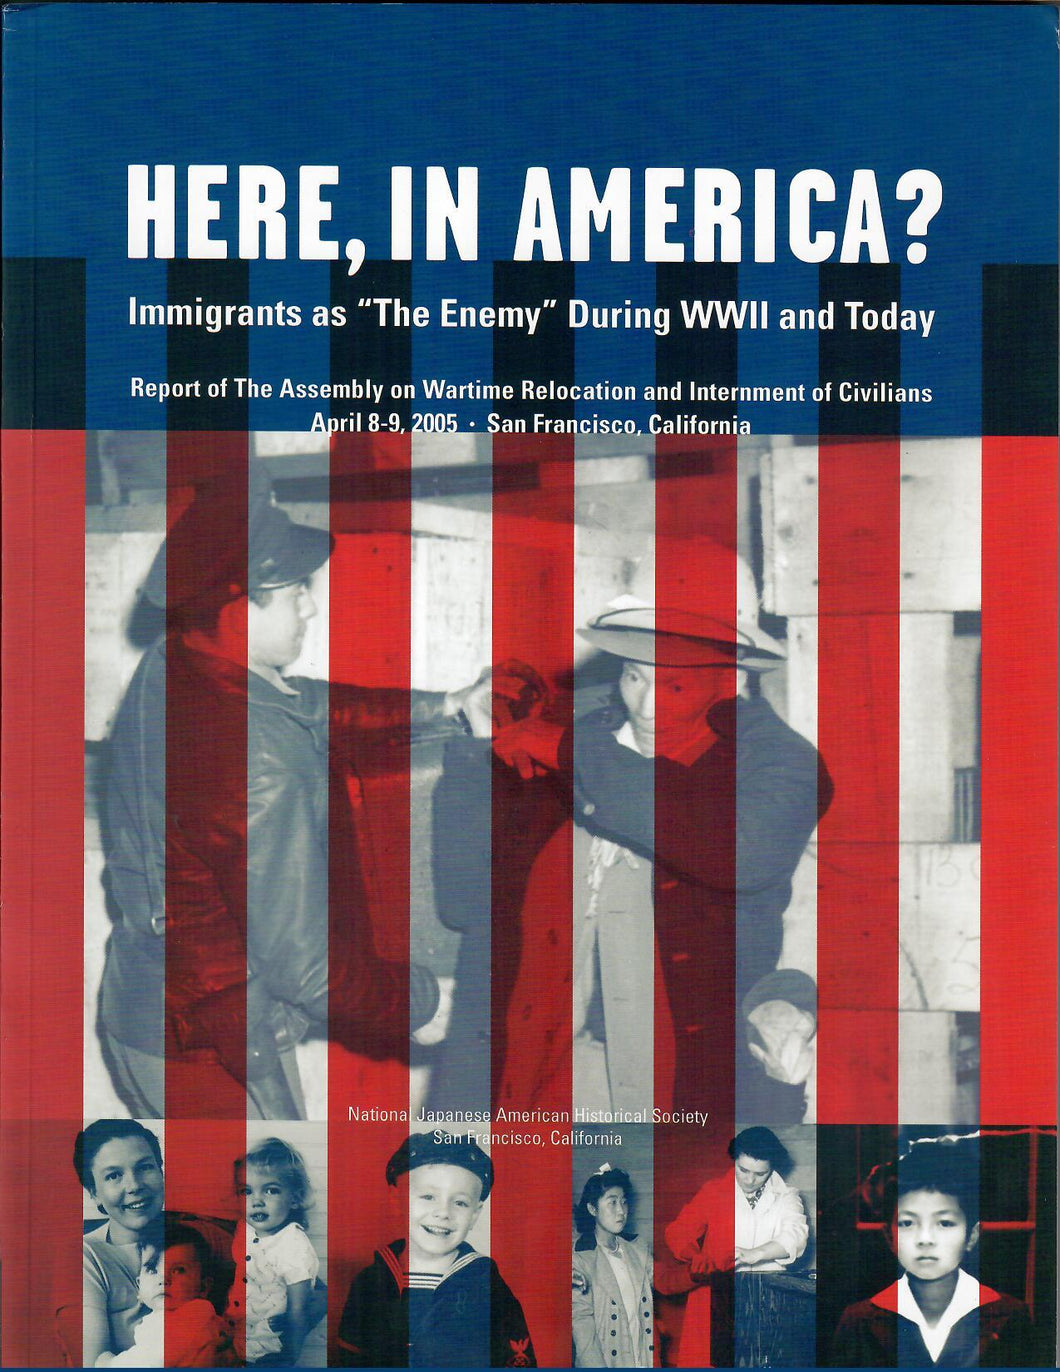 Here In America? The Assembly on the Wartime Relocation and Internment of Civilians